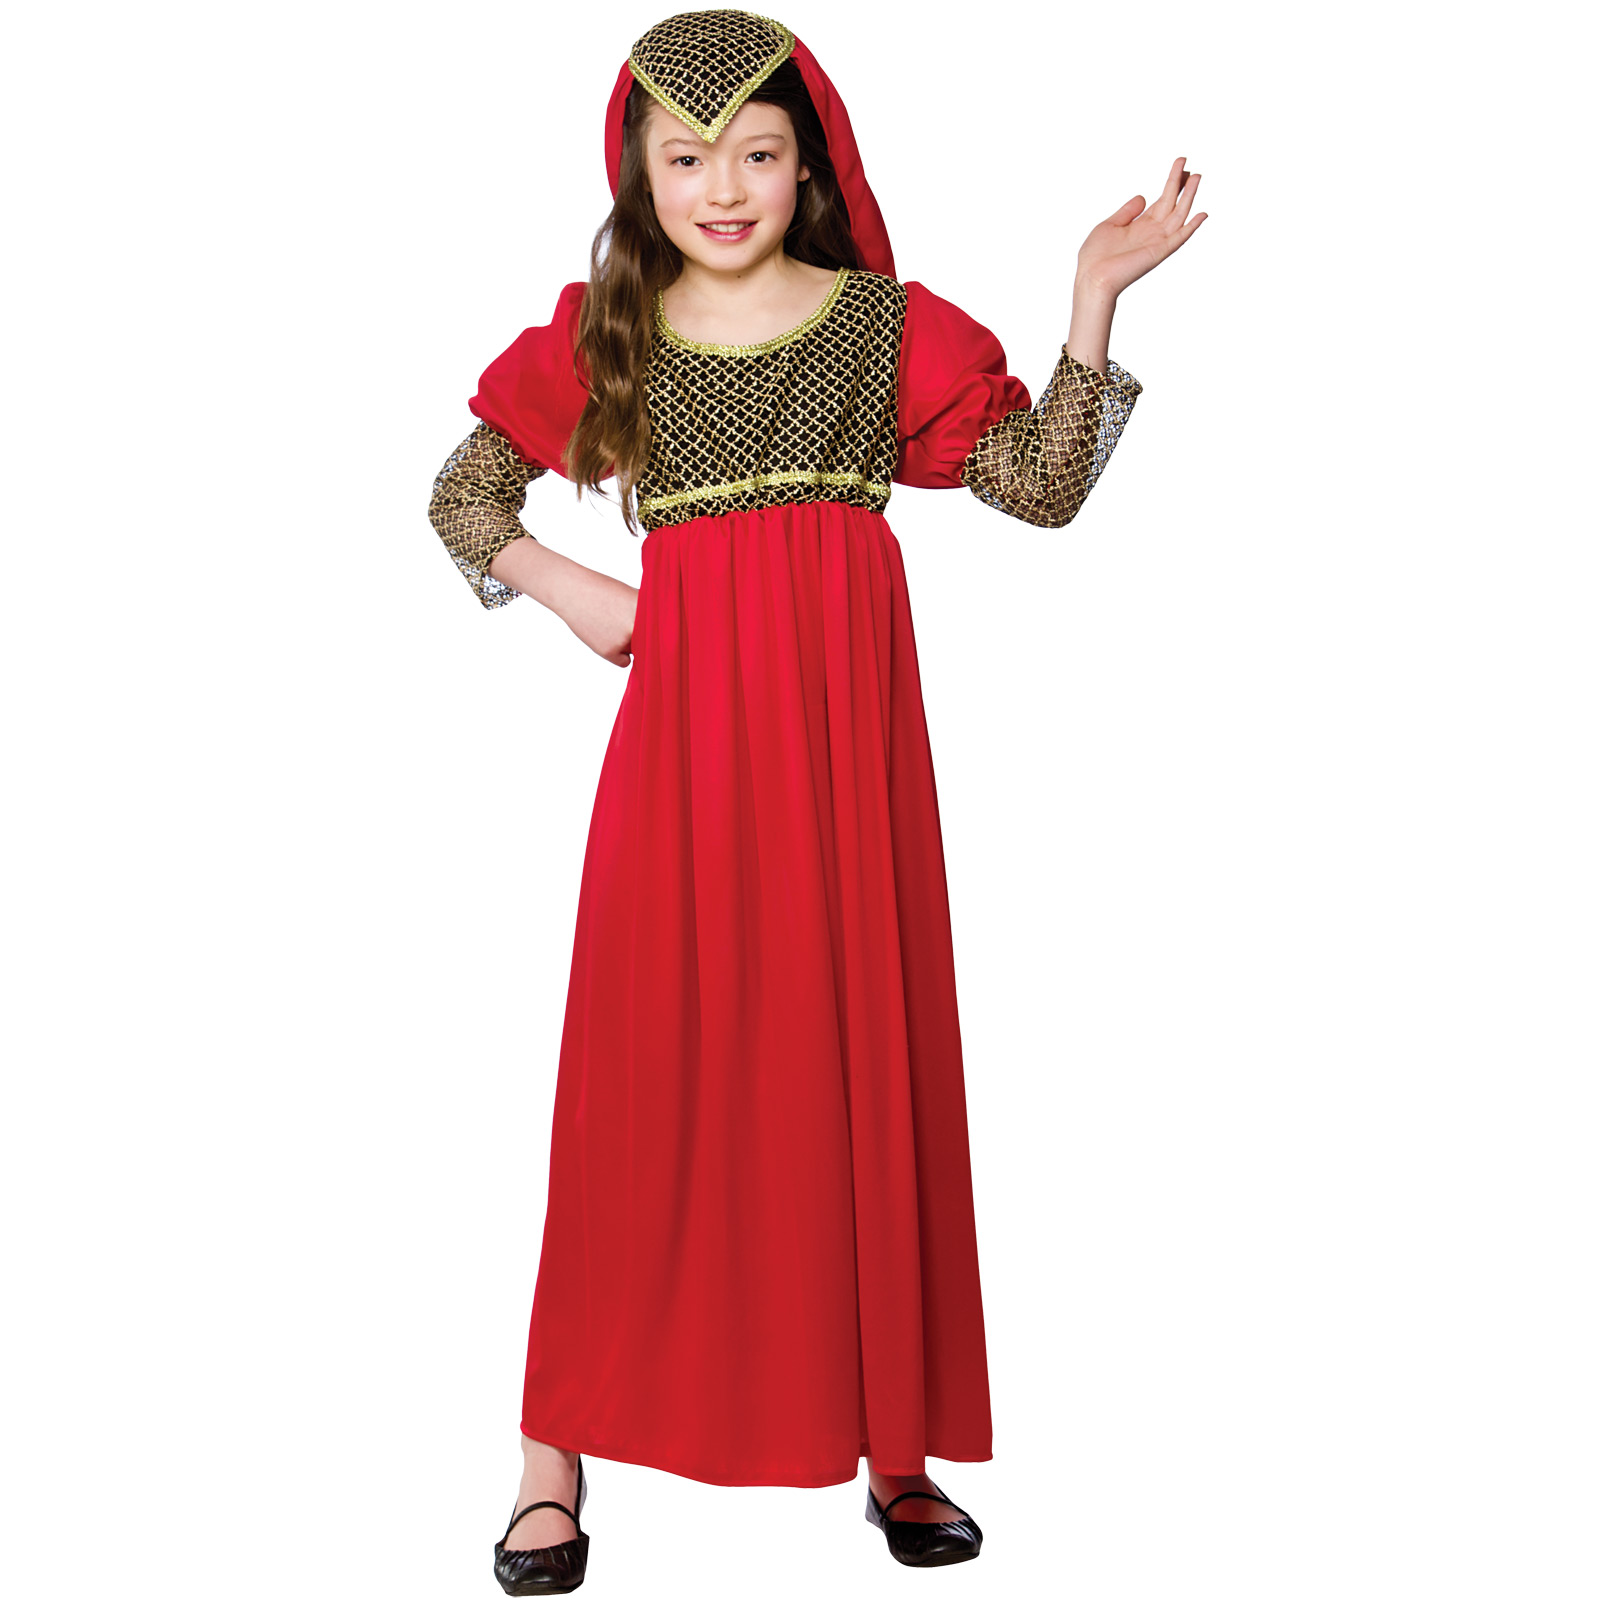 Halloween Girls Princess Fancy Dress Up Costume Outfits: Princess Juliet Red Costume For Girls Fancy Dress Up Party